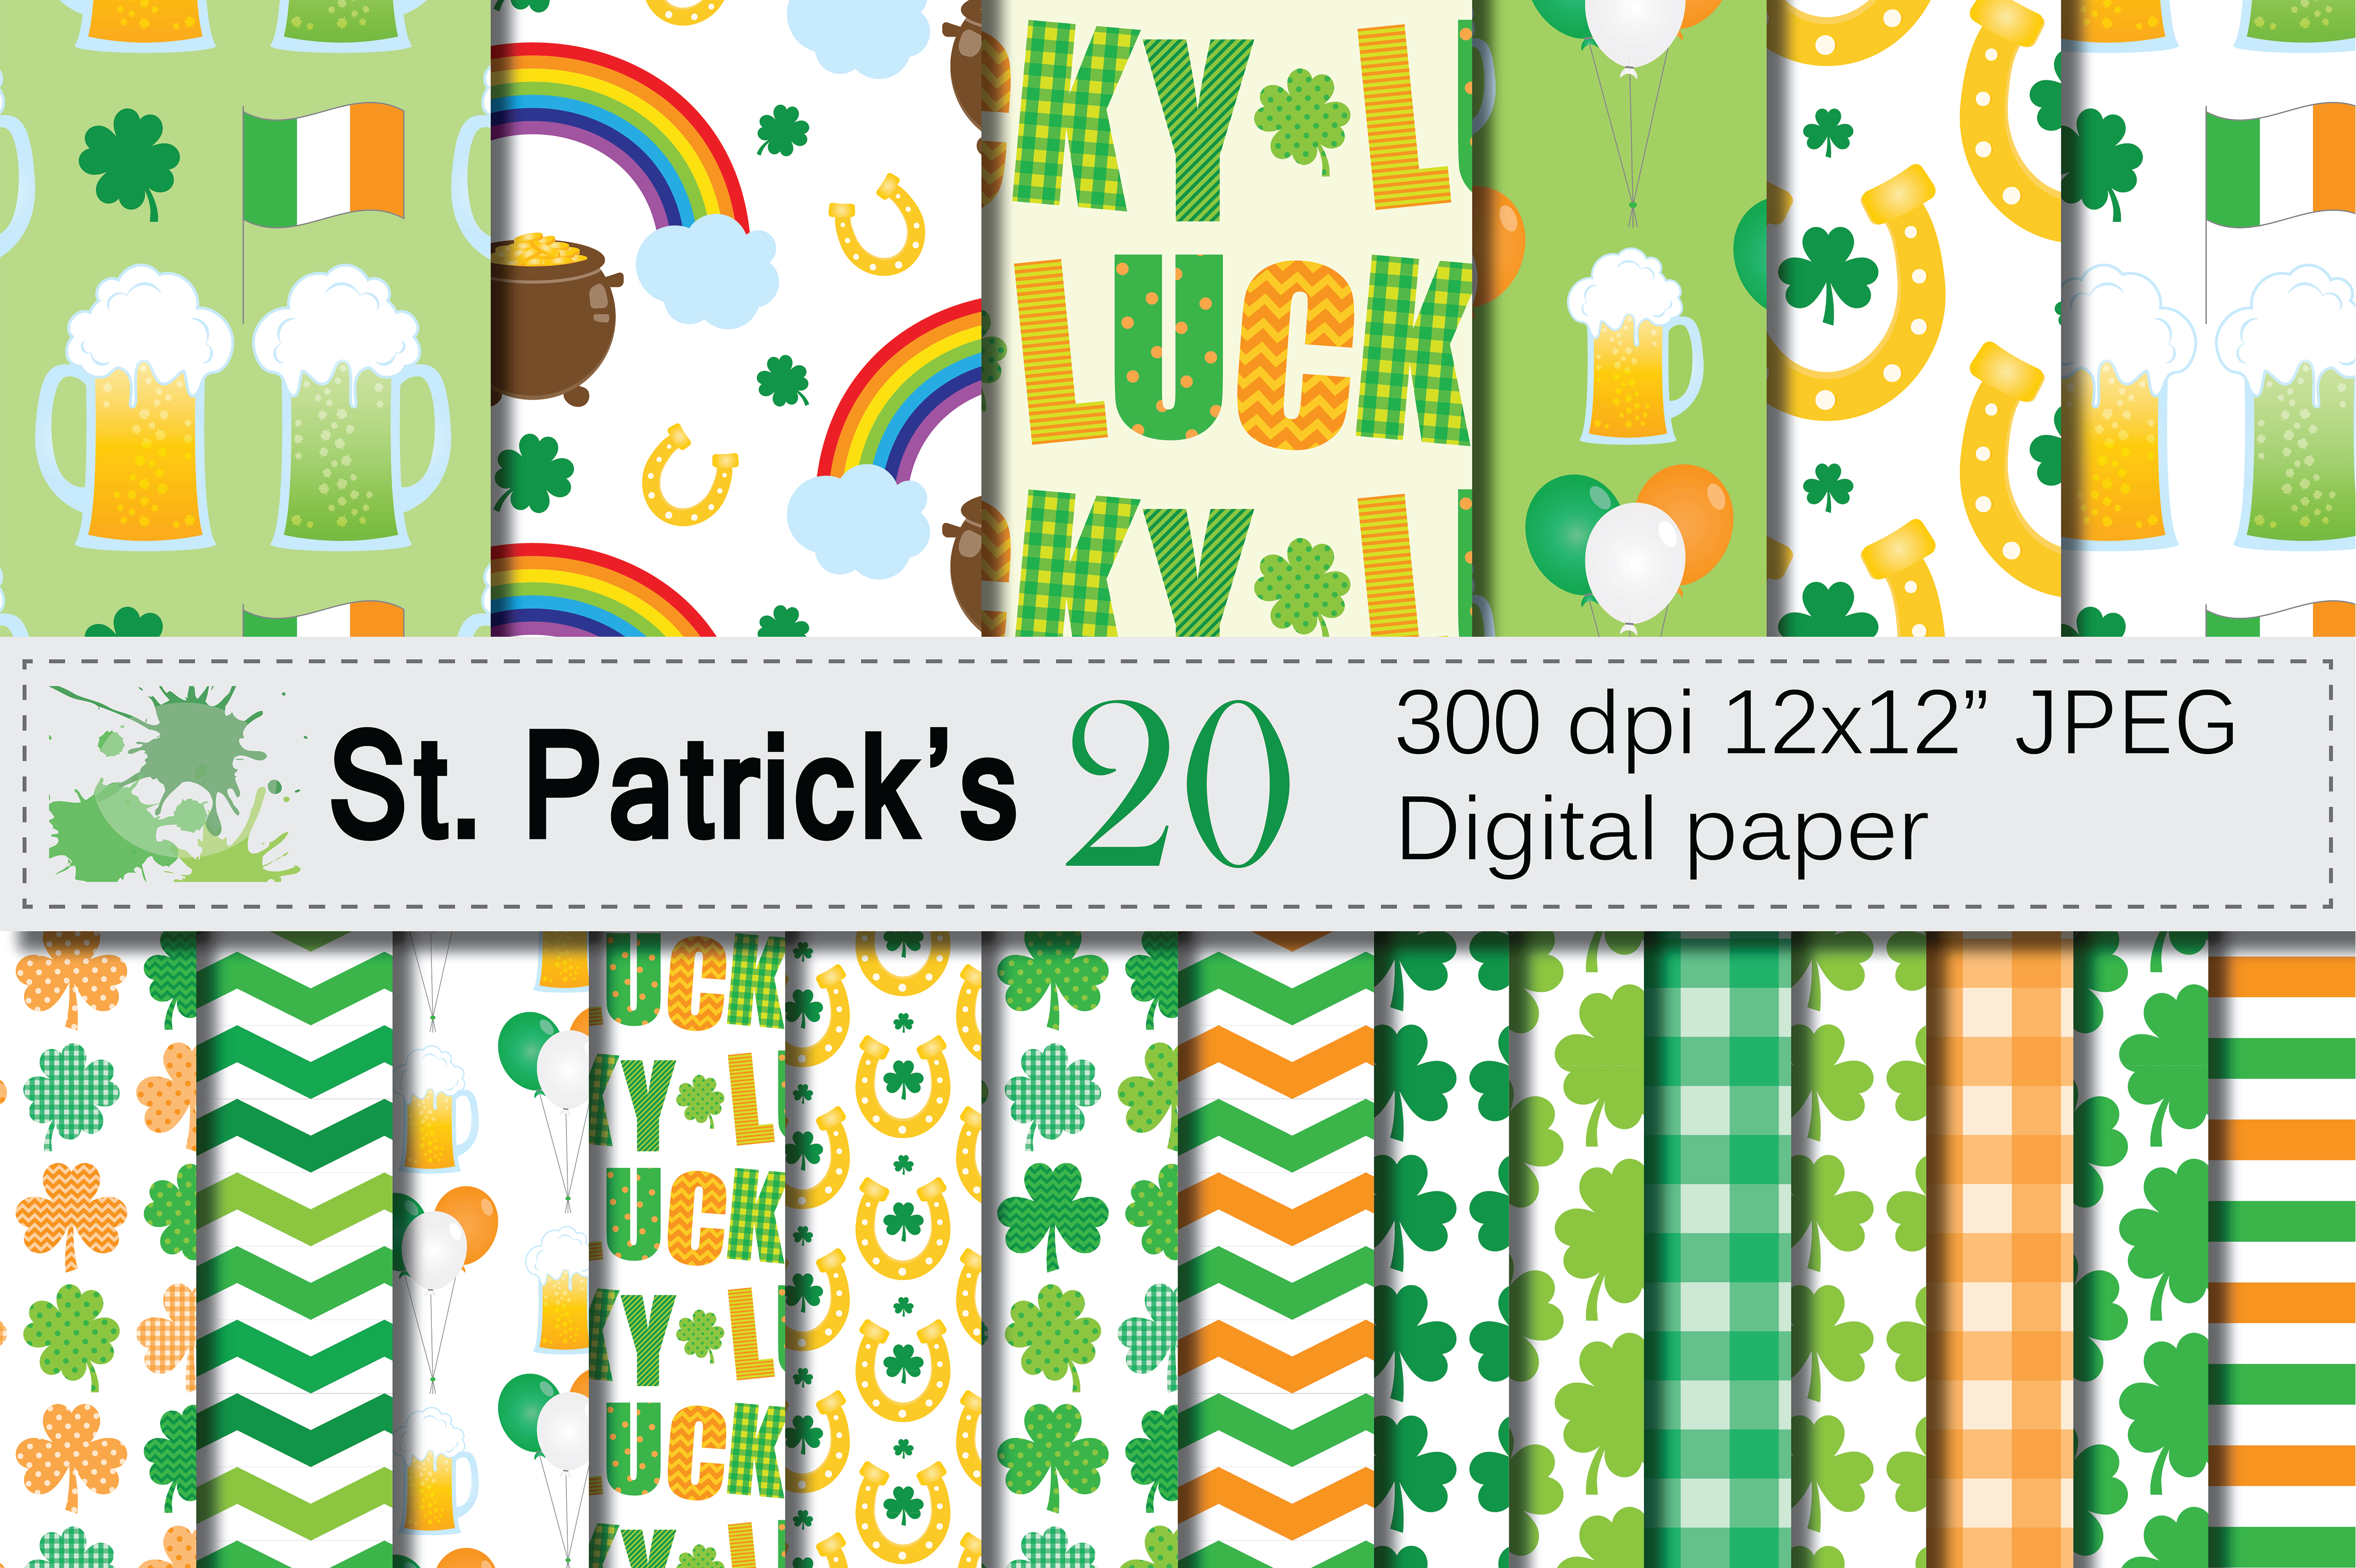 Download Free St Patrick S Day Digital Paper Graphic By Vr Digital Design for Cricut Explore, Silhouette and other cutting machines.